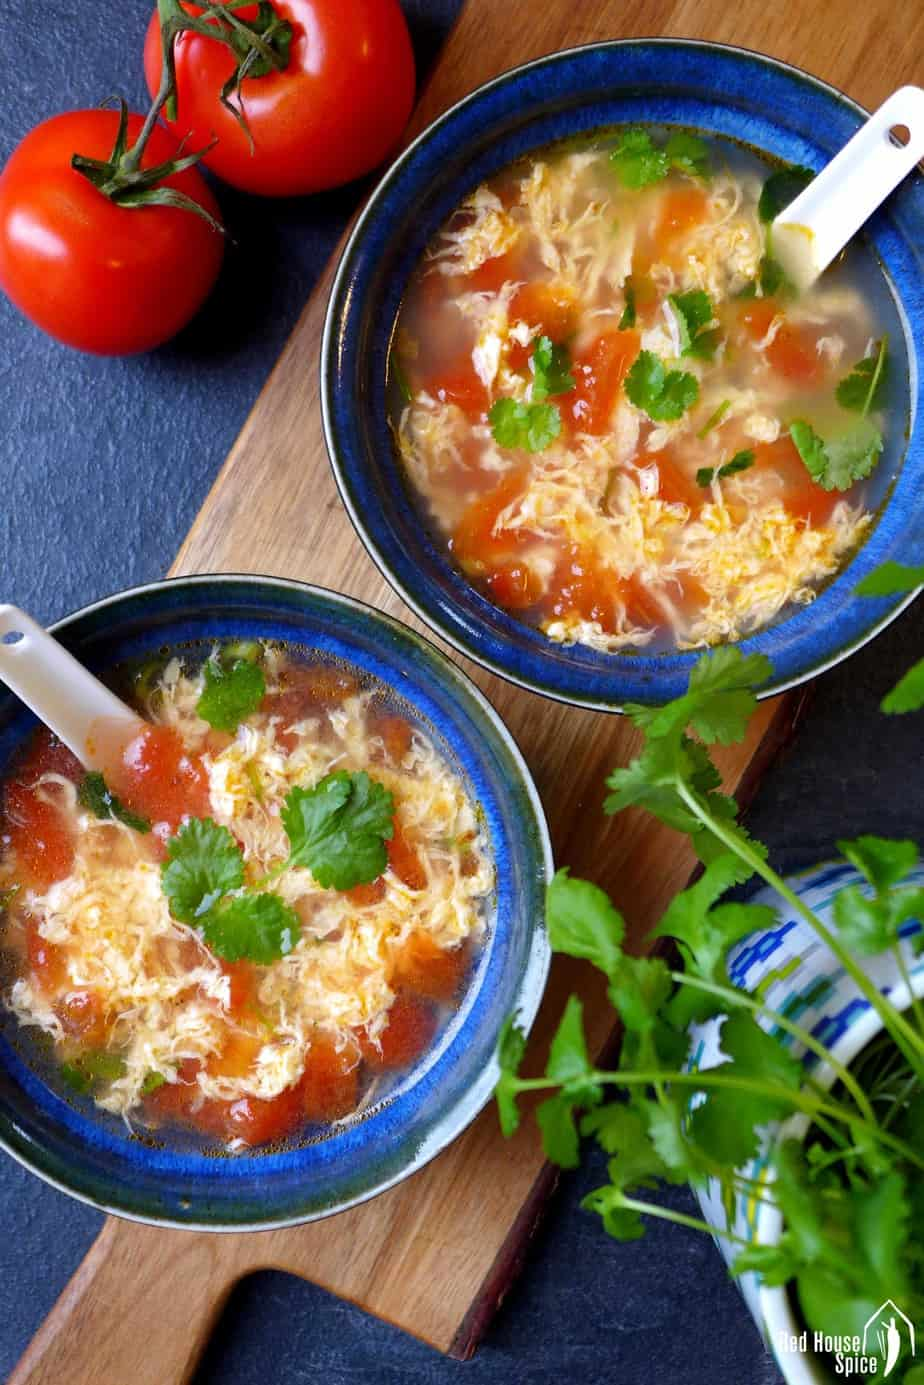 Two bowls of egg drop soup with tomatoes